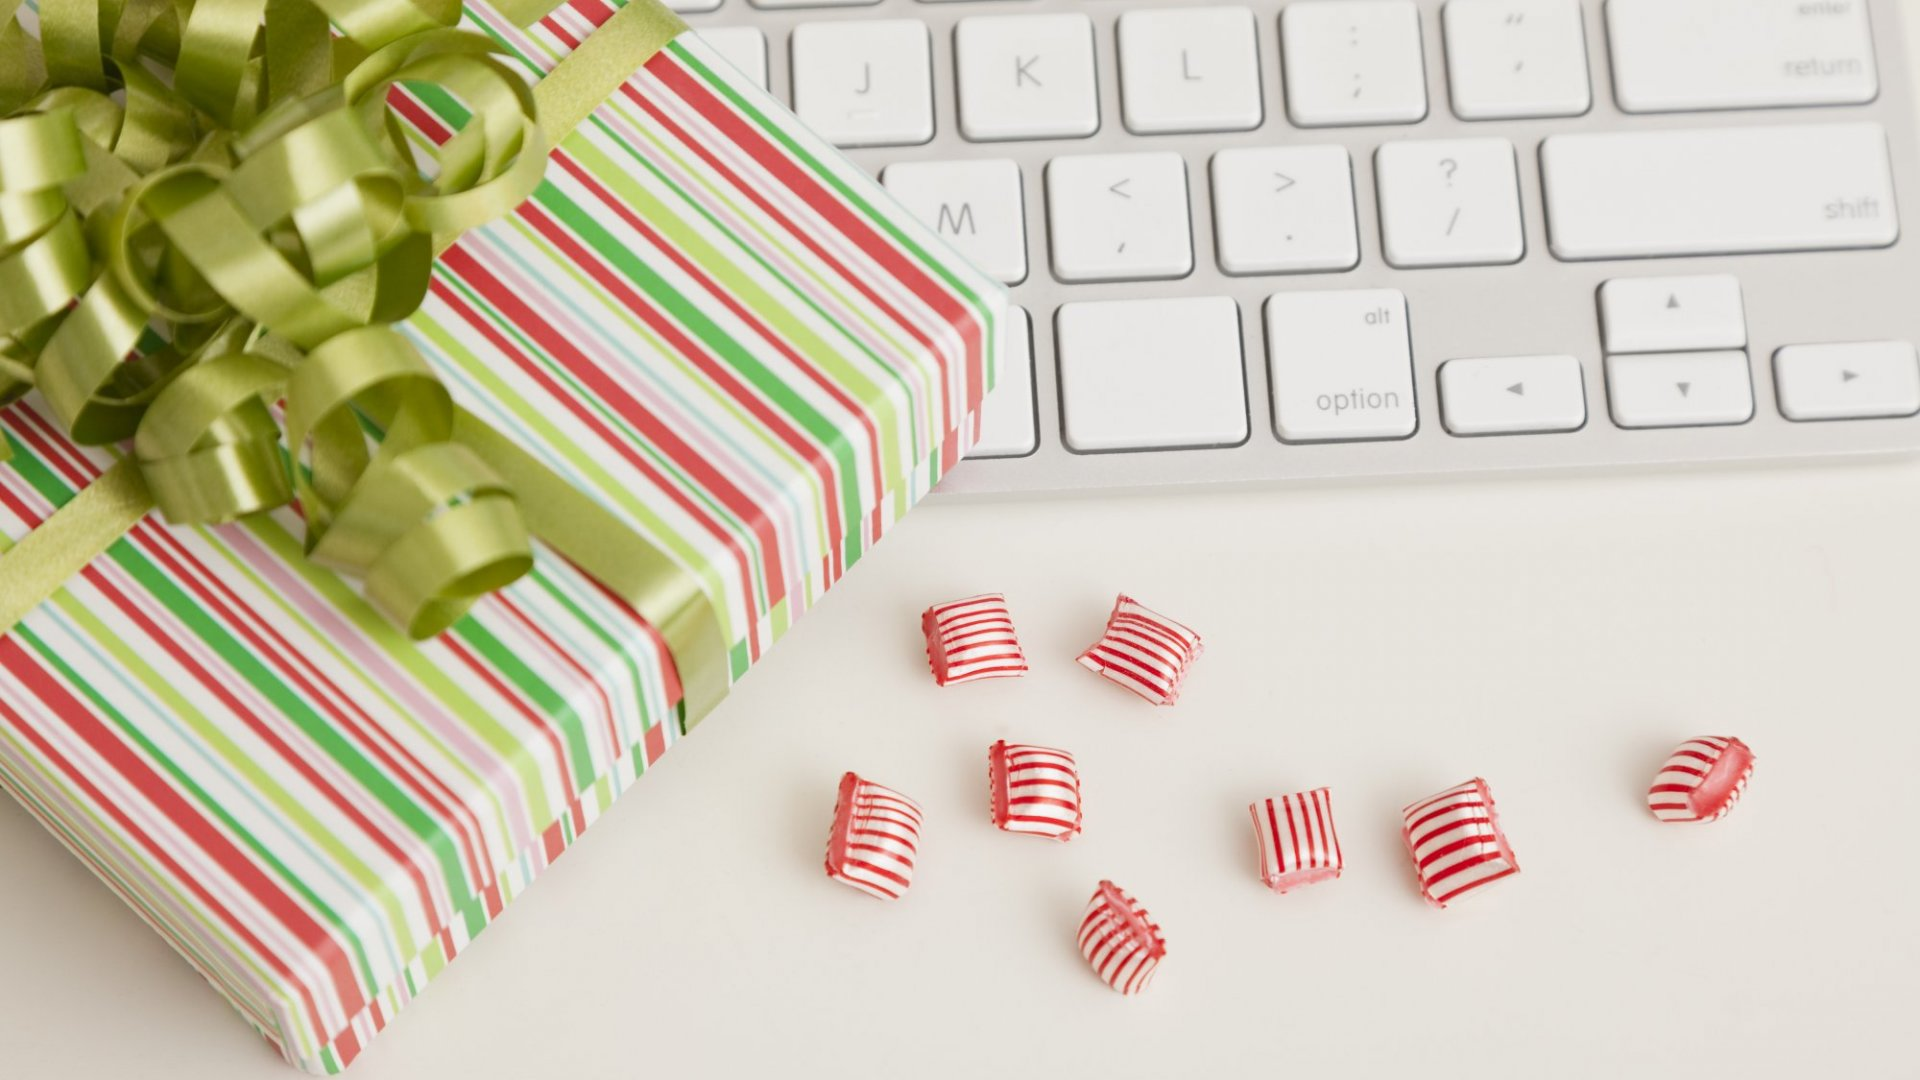 Want to Spread Joy At Work This Month? Try These 31 Random Acts of Christmas Kindness